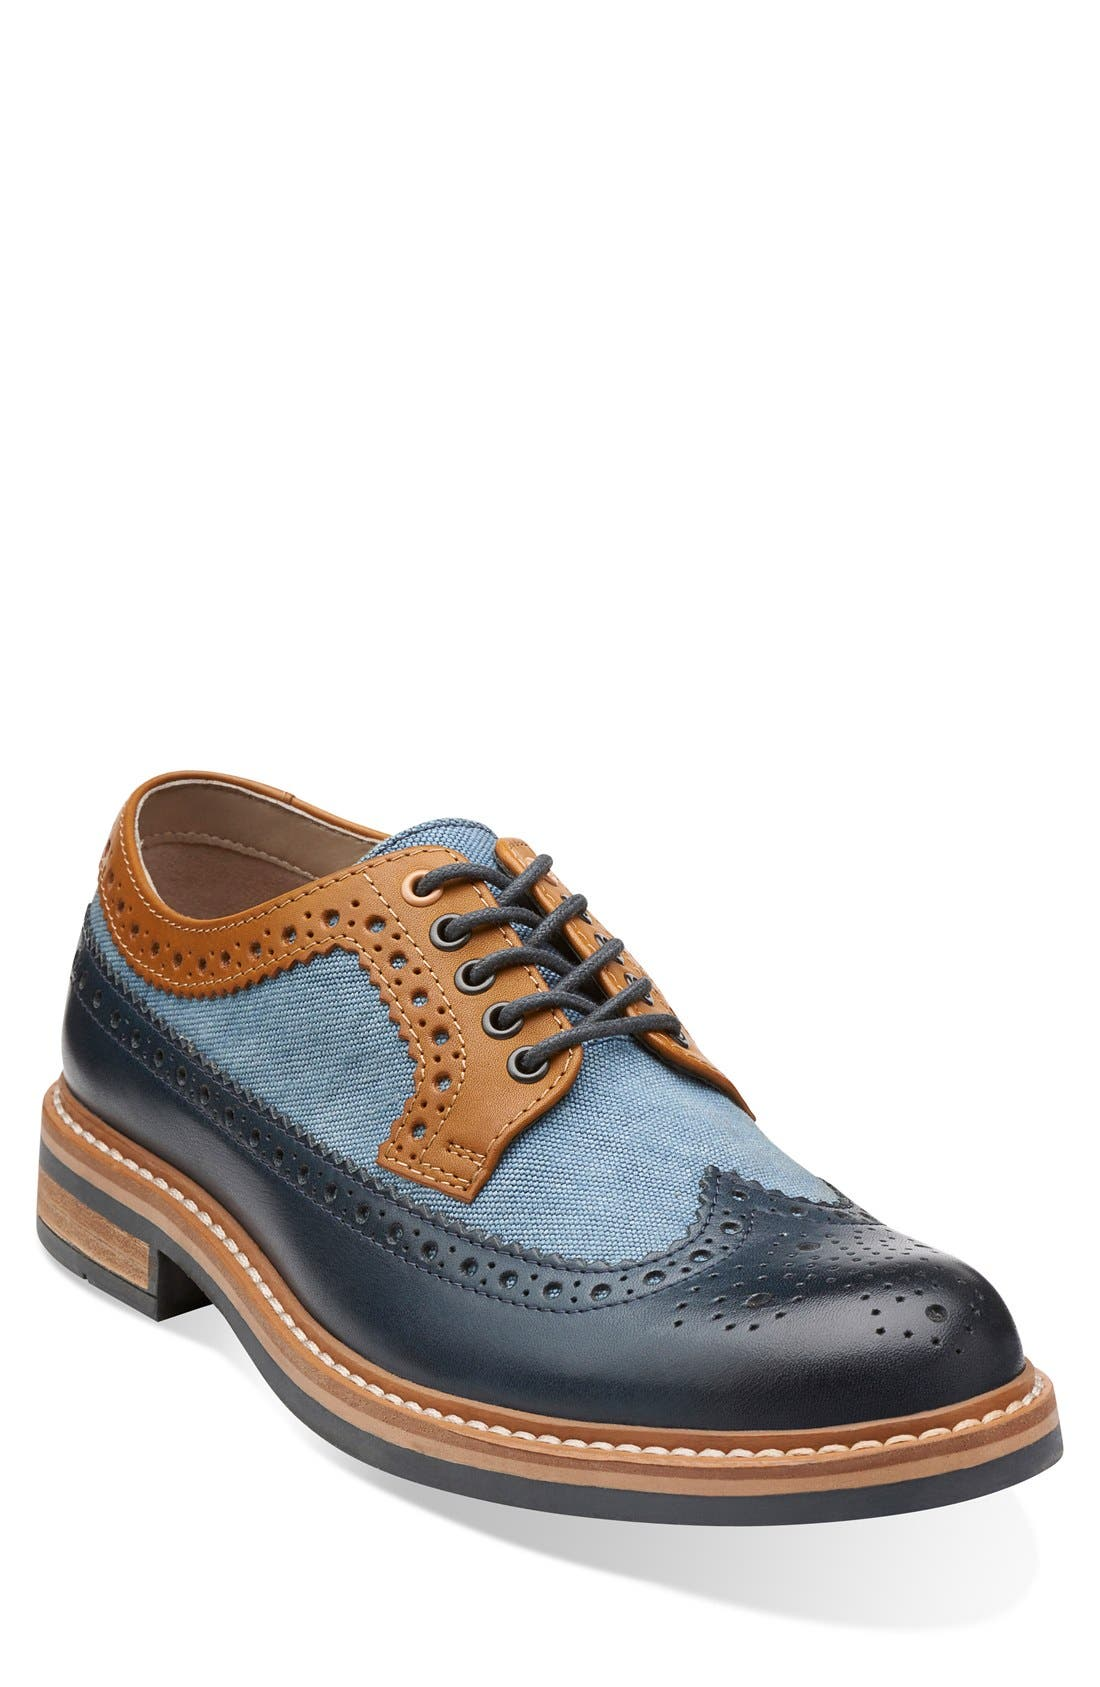 Clarks<sup>®</sup> 'Darby Limit' Spectator Shoe,